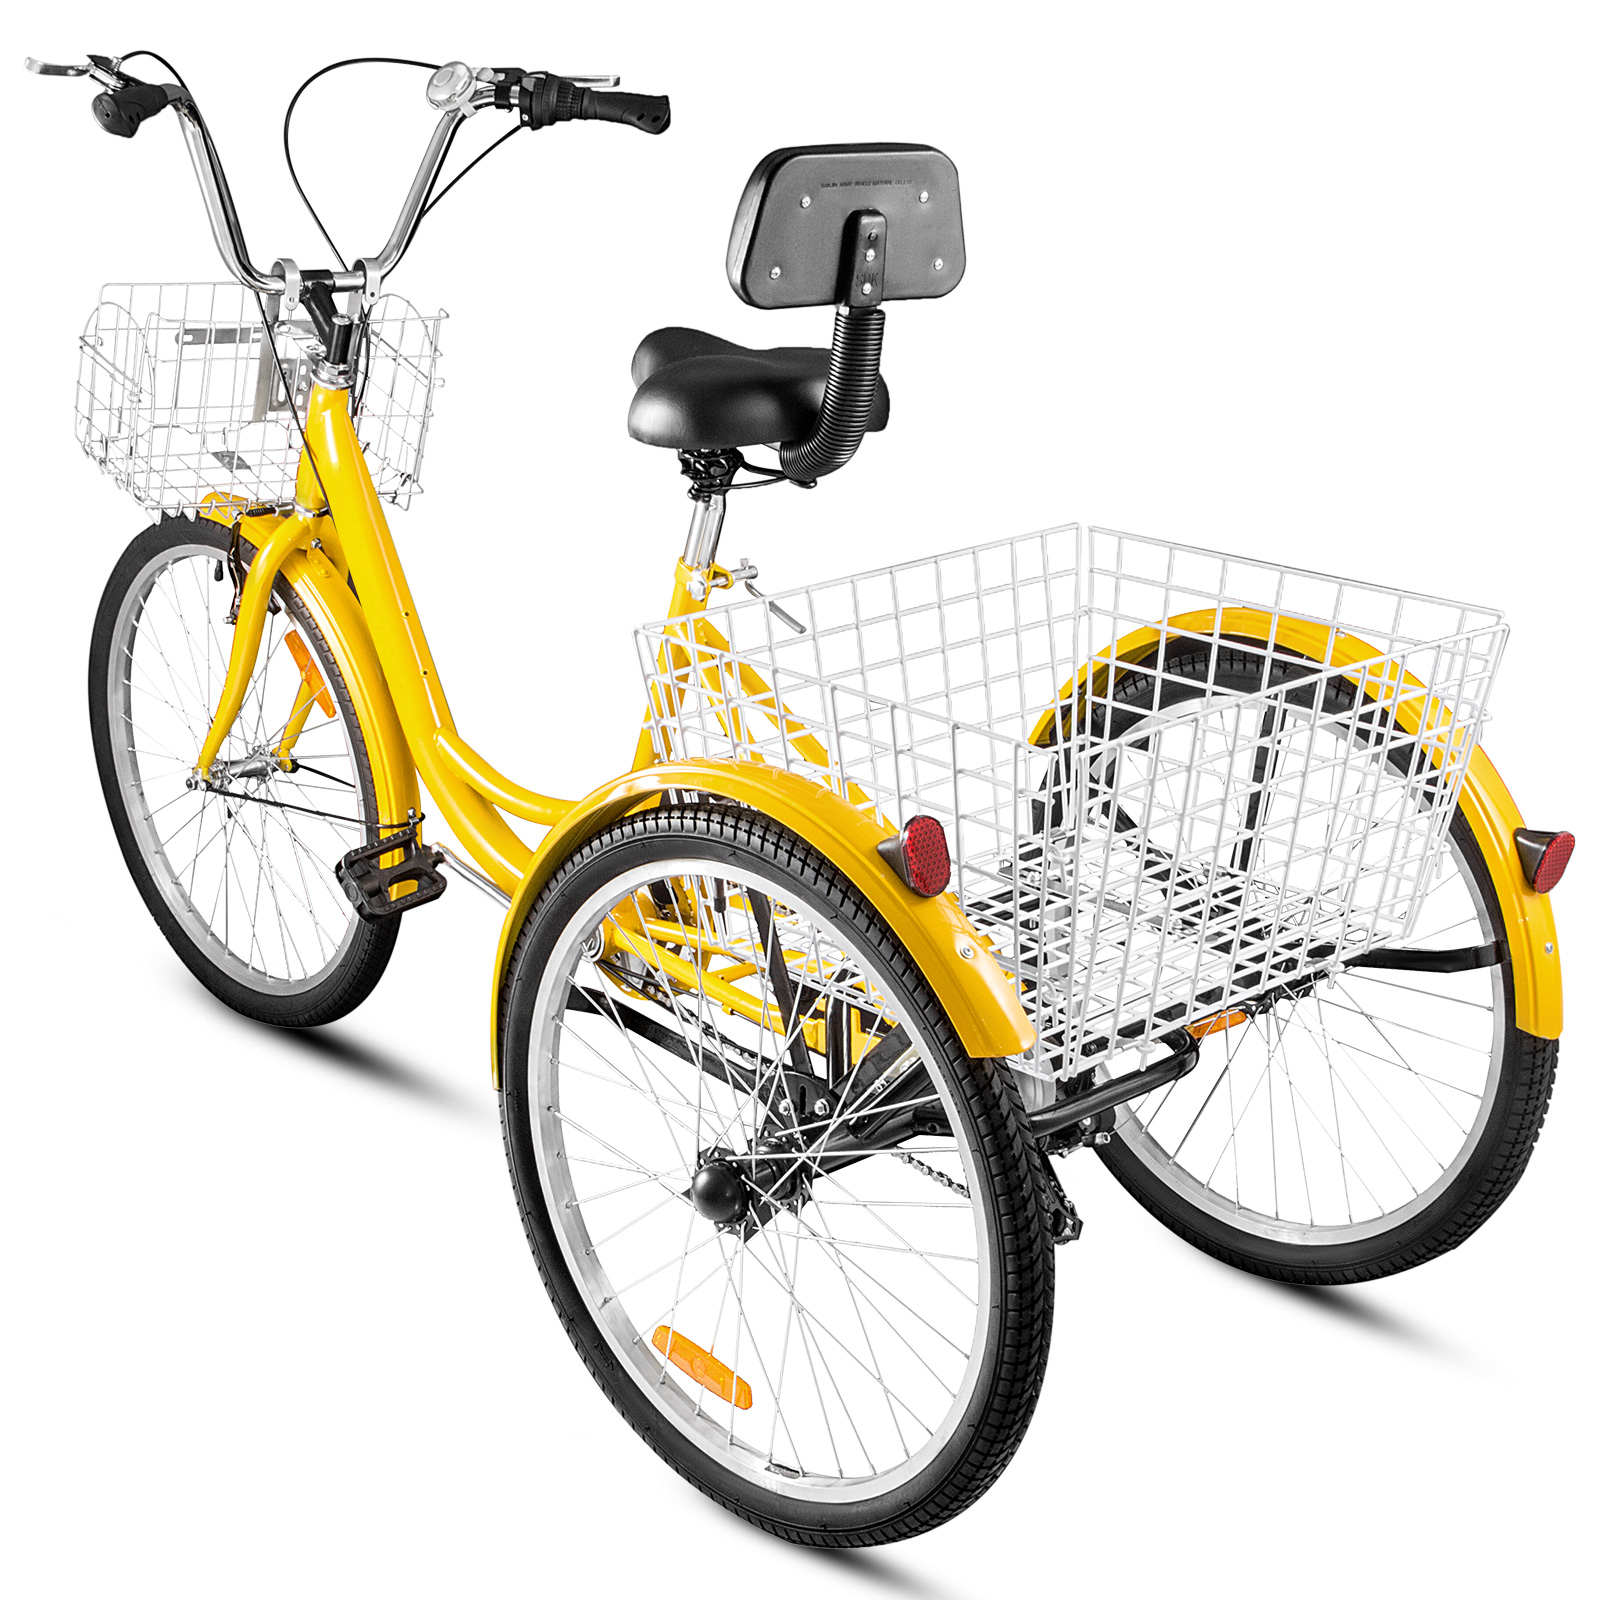 20-24-26-034-Adult-Tricycle-1-7-Speed-3-Wheel-For-Shopping-W-Installation-Tools miniature 384